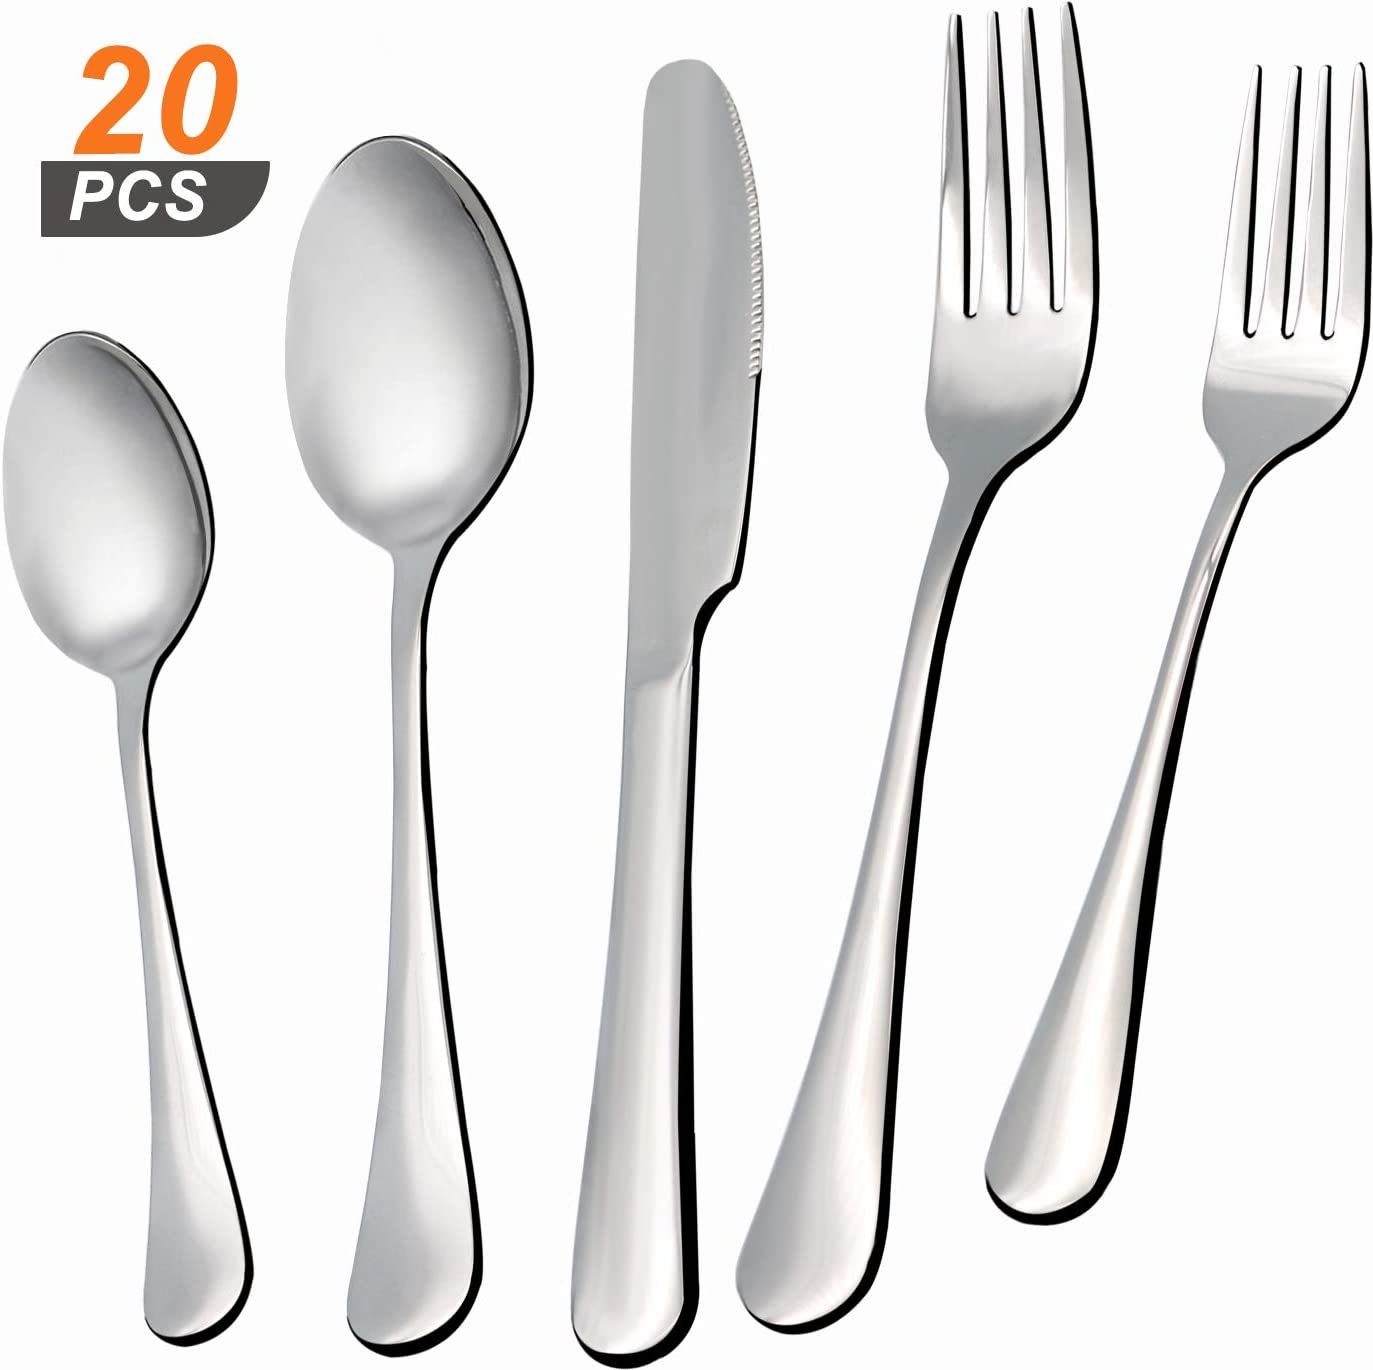 20 Pieces Silverware Cutlery Set, Stainless Steel Forks, Knives, and Spoons for Dinner, Salad, and Soup, Flatware set with Polished Finish, Reusable and Dishwasher Safe